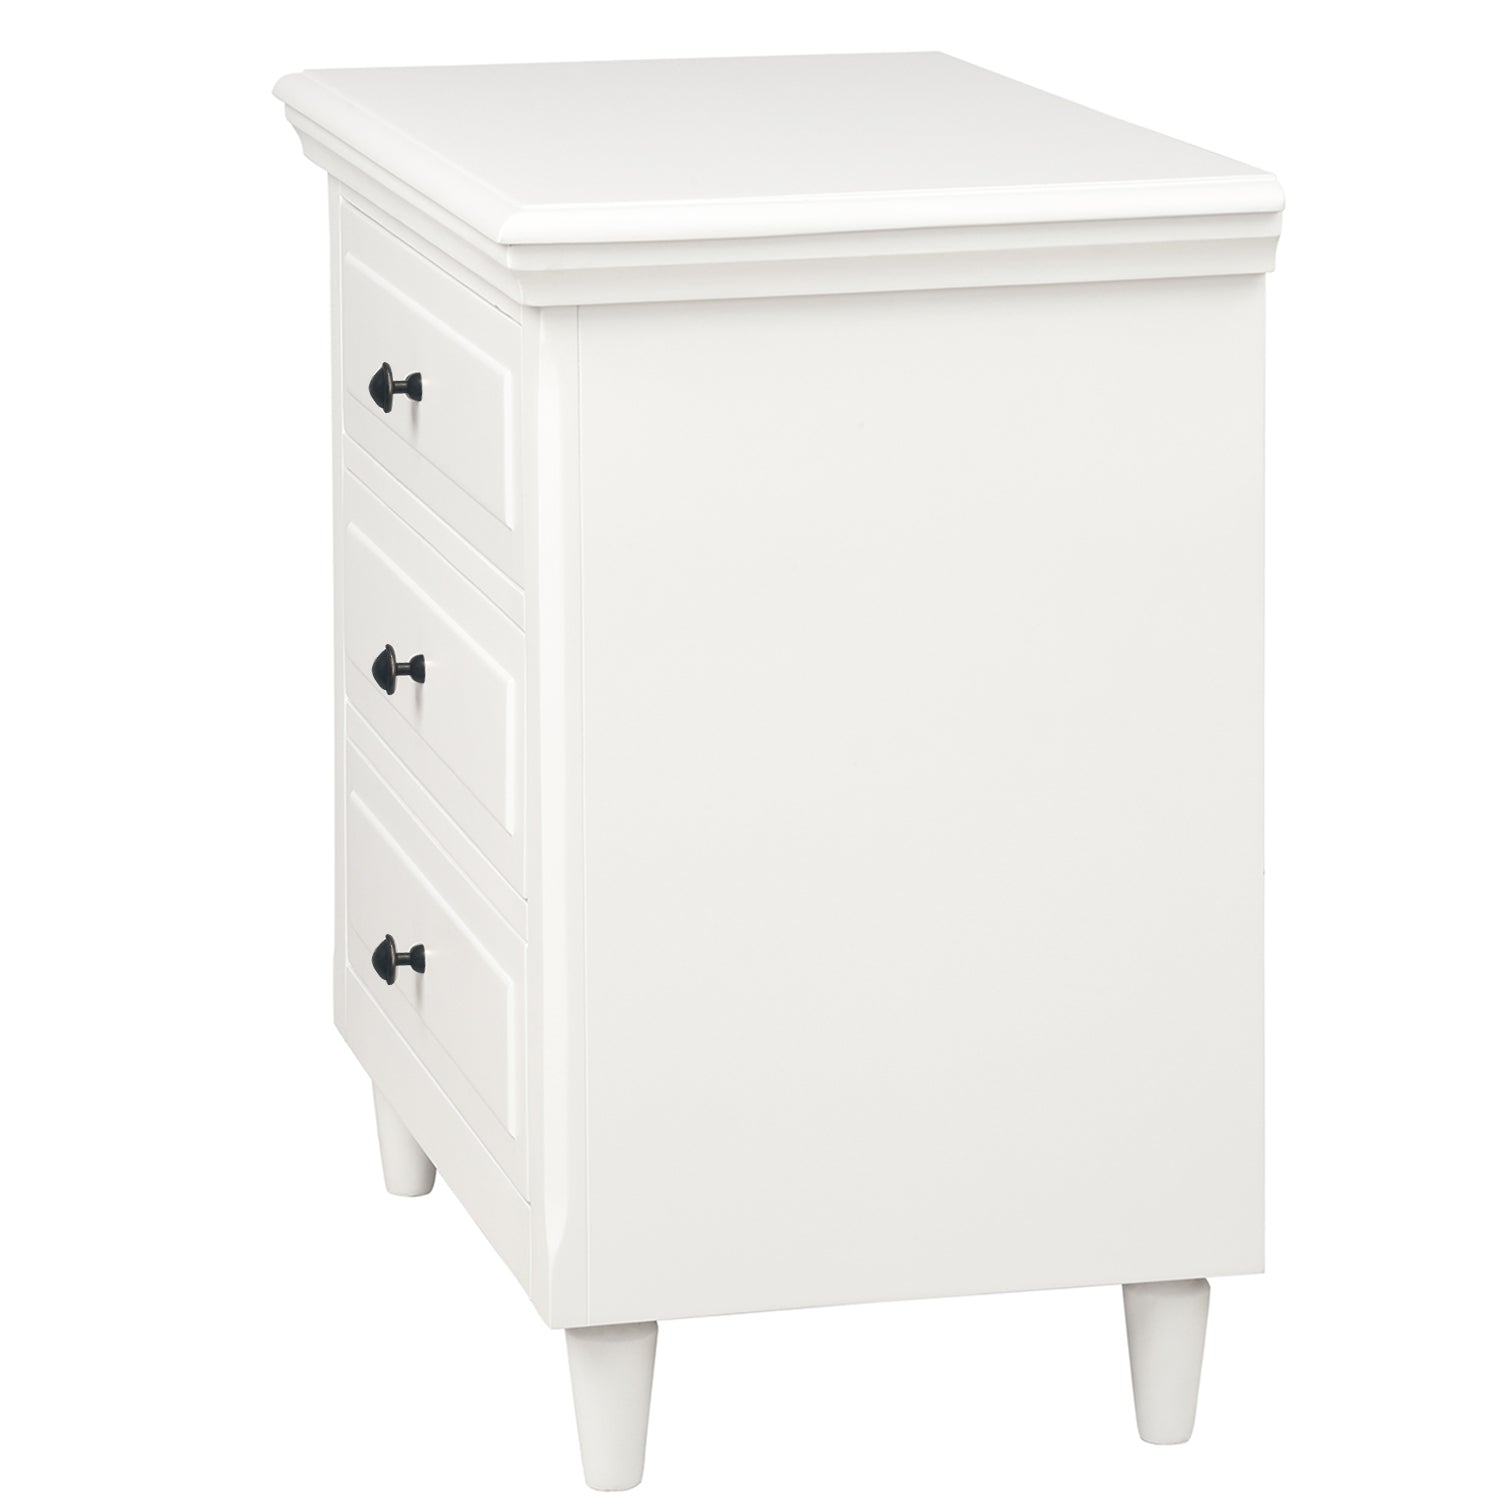 3-Drawer Nightstand End Table Storage Wood Cabinet Bedroom BH193010